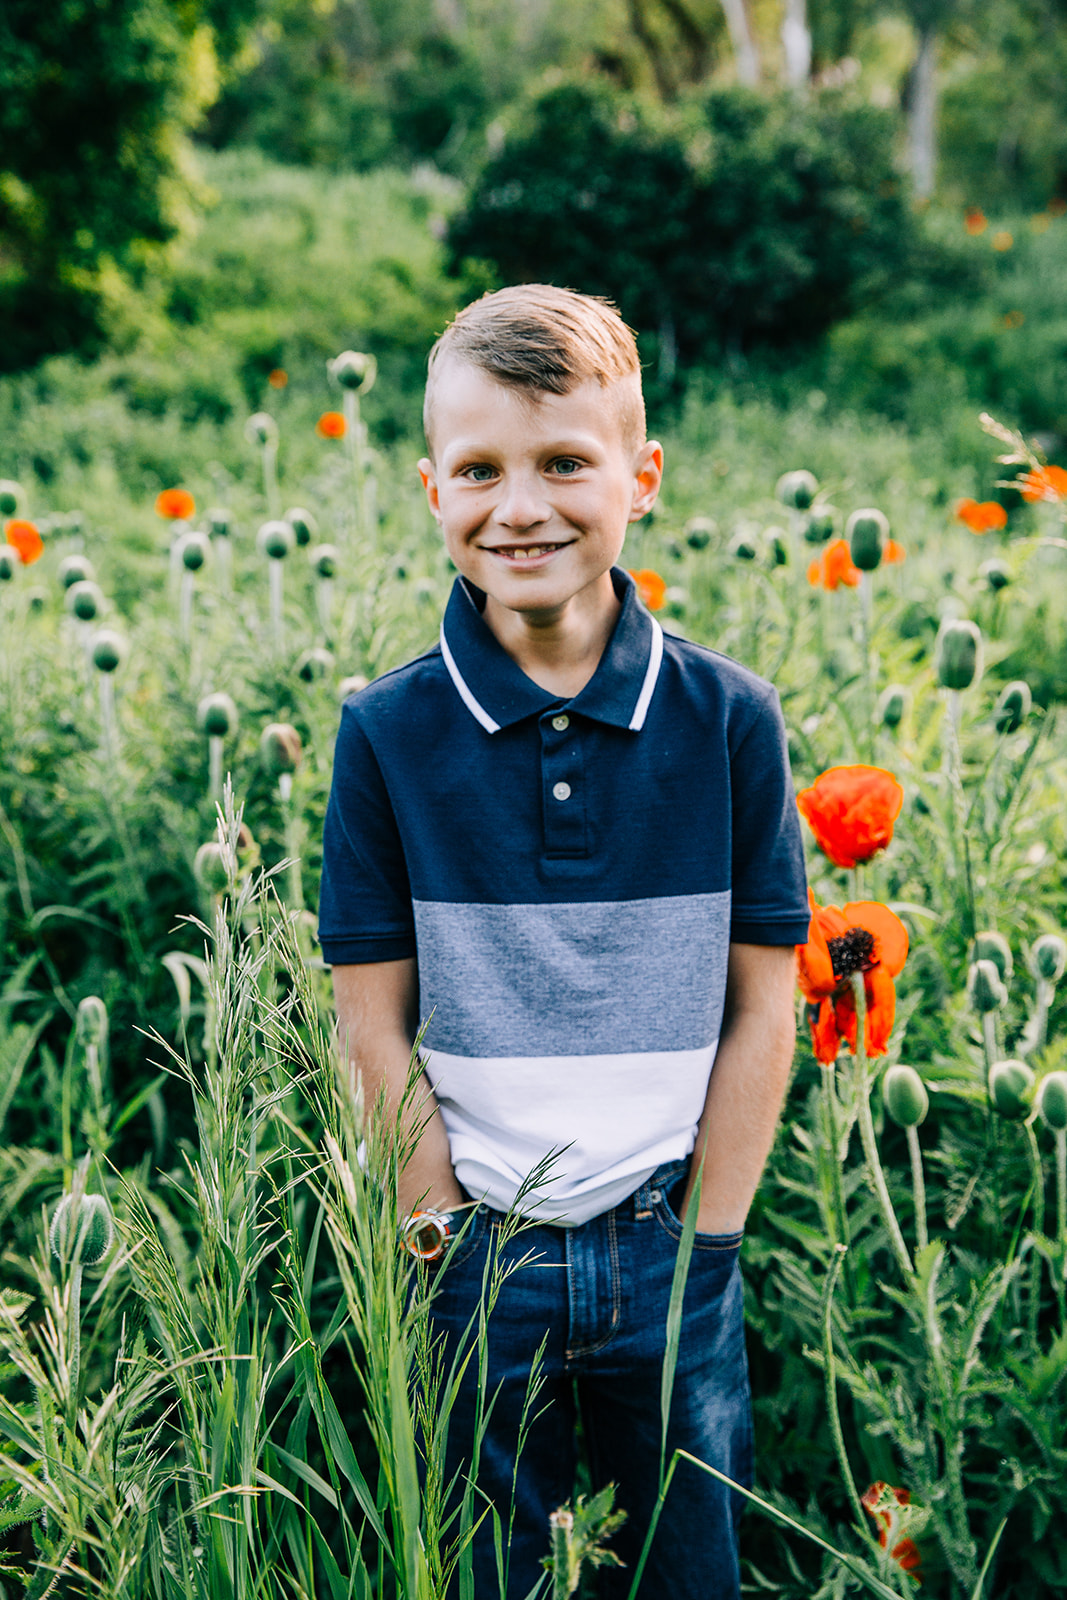 Portraits of all the young kids during family pictures taken in Mantua Utah by Bella Alder Photography, professional family photographer in Logan, Utah, and available for travel all over Utah! #bellaalderphoto #familyphotog #familyphotography #familypictures #familyphotos #outfitinspo #familyoutfits #poppyfields #northernutahfamilyphotographer #utahfamilyphotographer #cachevalleyfamilyphotographer